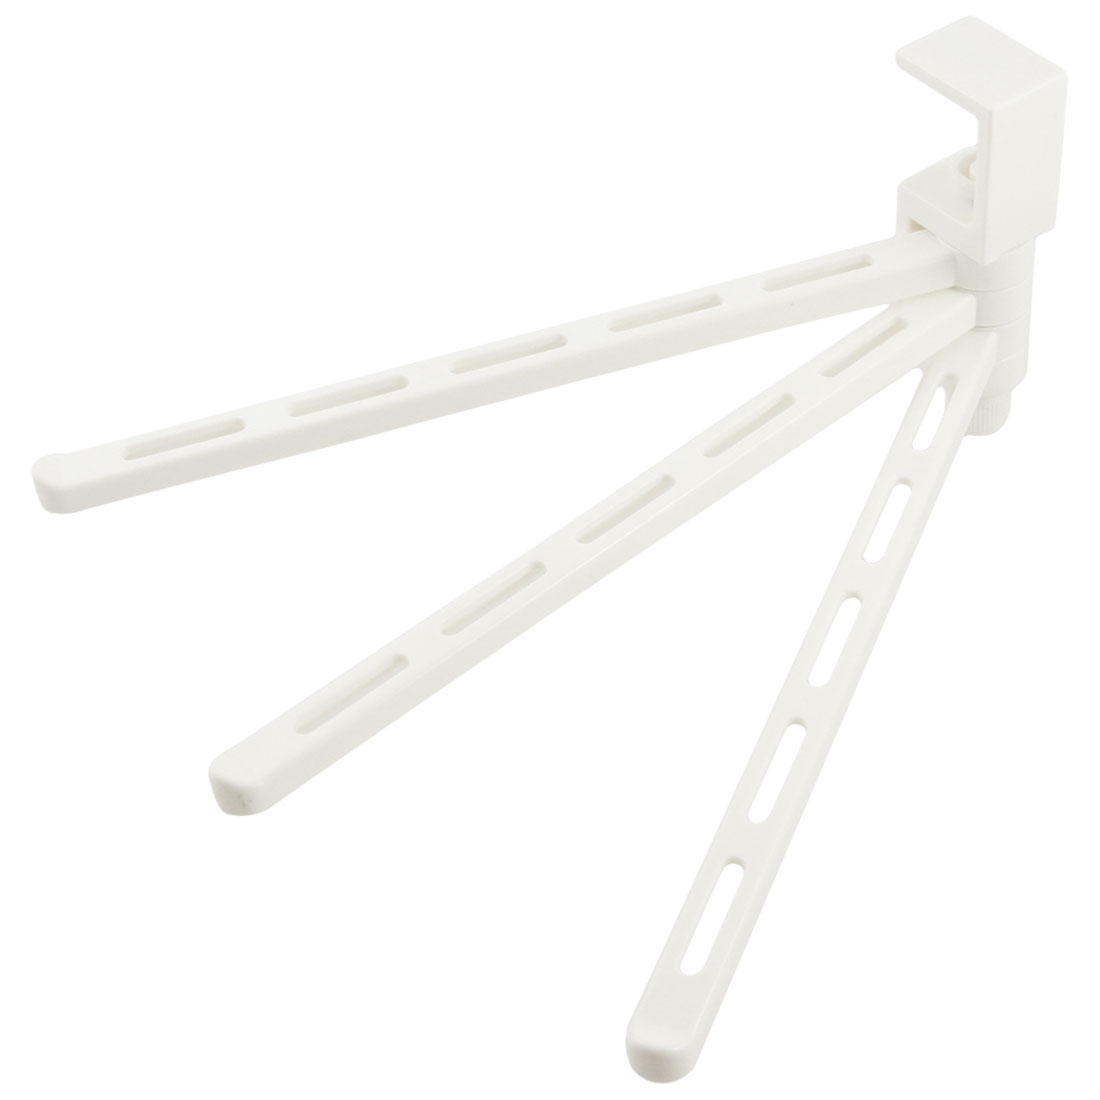 Off White Plastic Clothes Towels Holder Hanging Bracket for Wall Cabinet